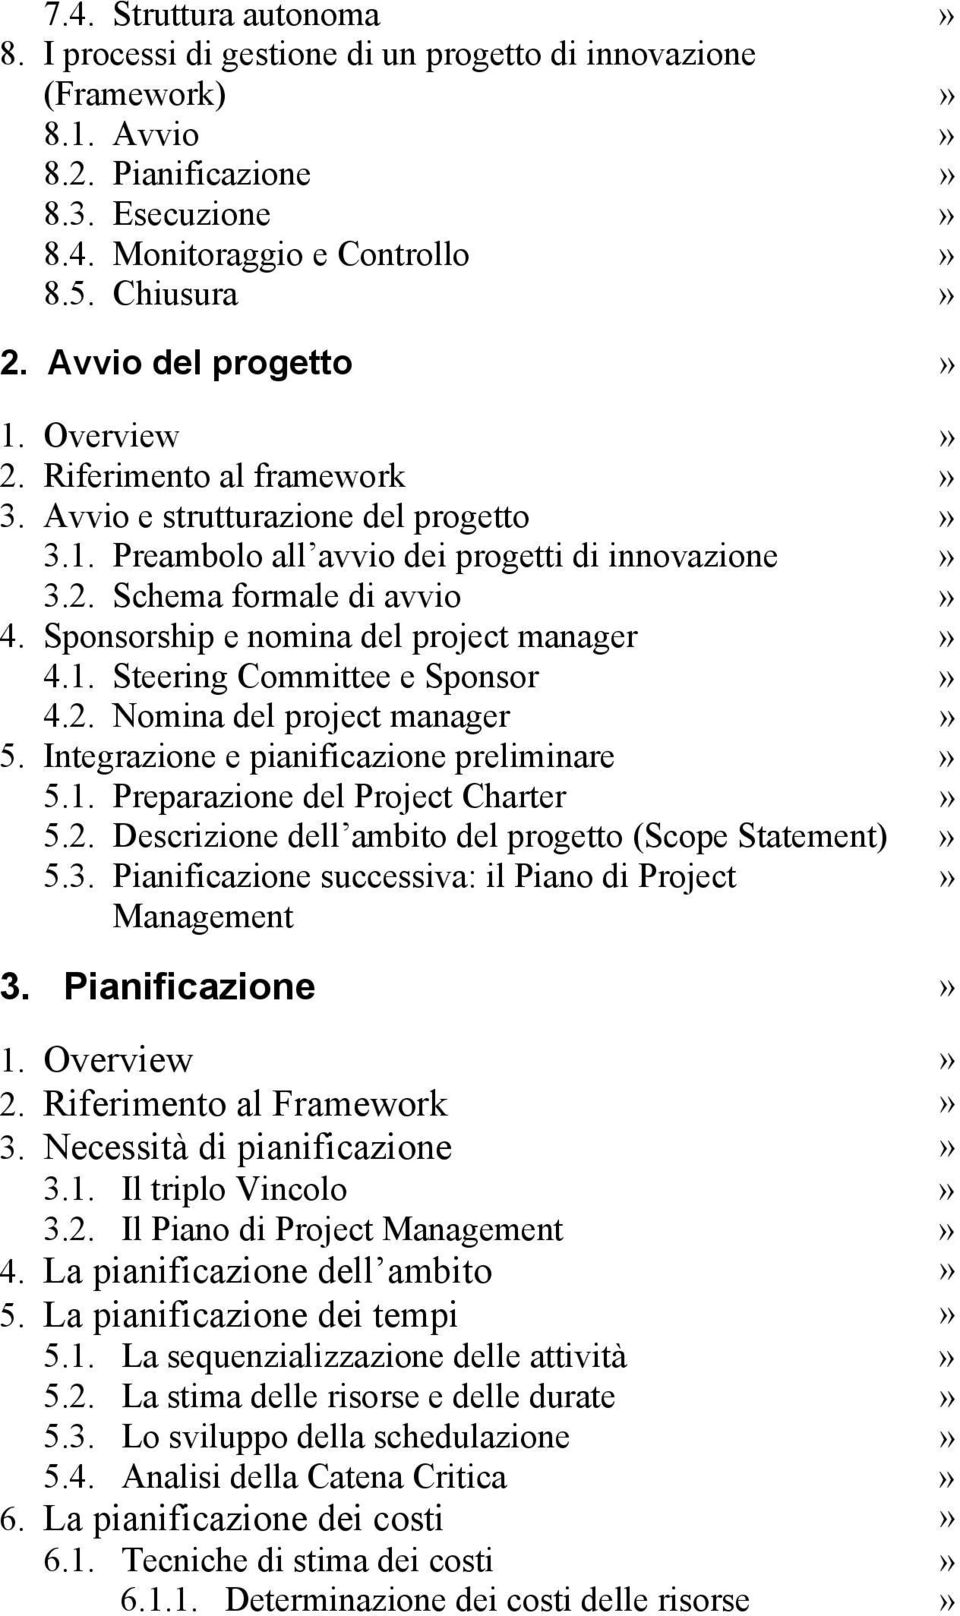 Sponsorship e nomina del project manager» 4.1. Steering Committee e Sponsor» 4.2. Nomina del project manager» 5. Integrazione e pianificazione preliminare» 5.1. Preparazione del Project Charter» 5.2. Descrizione dell ambito del progetto (Scope Statement)» 5.